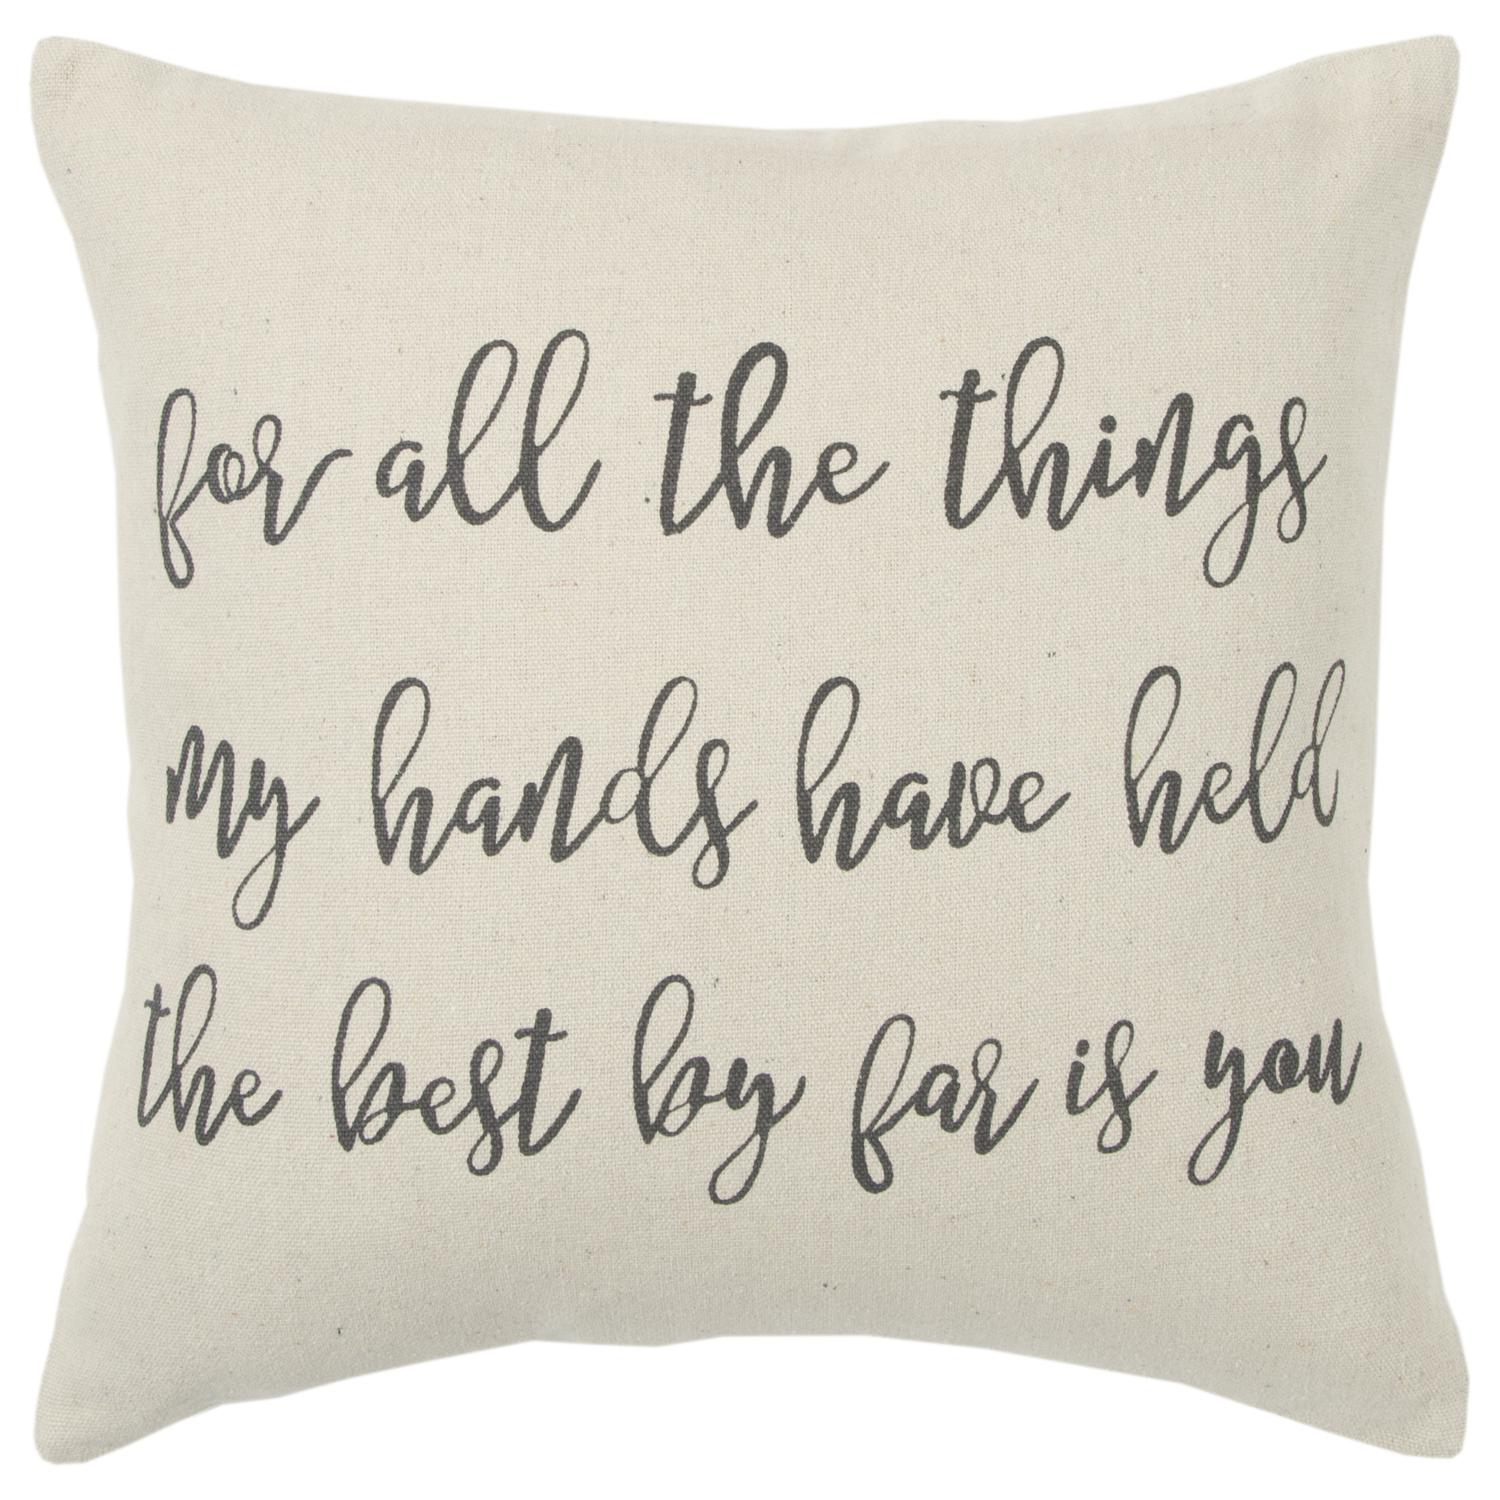 """Rizzy Home Holiday """"For All The Things"""" Poly Filled Decorative Throw Pillow, 20"""" x 20"""", Natural"""